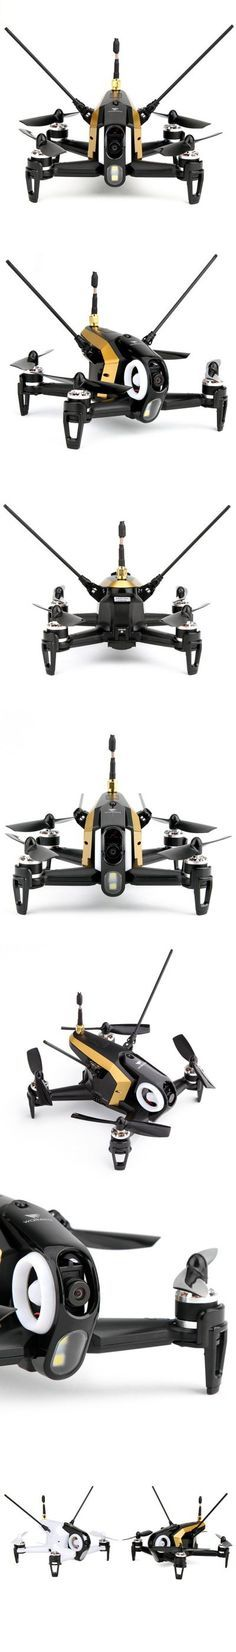 RC Quadcopters   Walkera Rodeo 150 Racing Drone BNF $196.00 - Looking for a 'Quadcopter'? Get your first quadcopter today. TOP Rated Quadcopters has Beginner, Racing, Aerial Photography, Auto Follow Quadcopters and FPV Goggles, plus video reviews and more